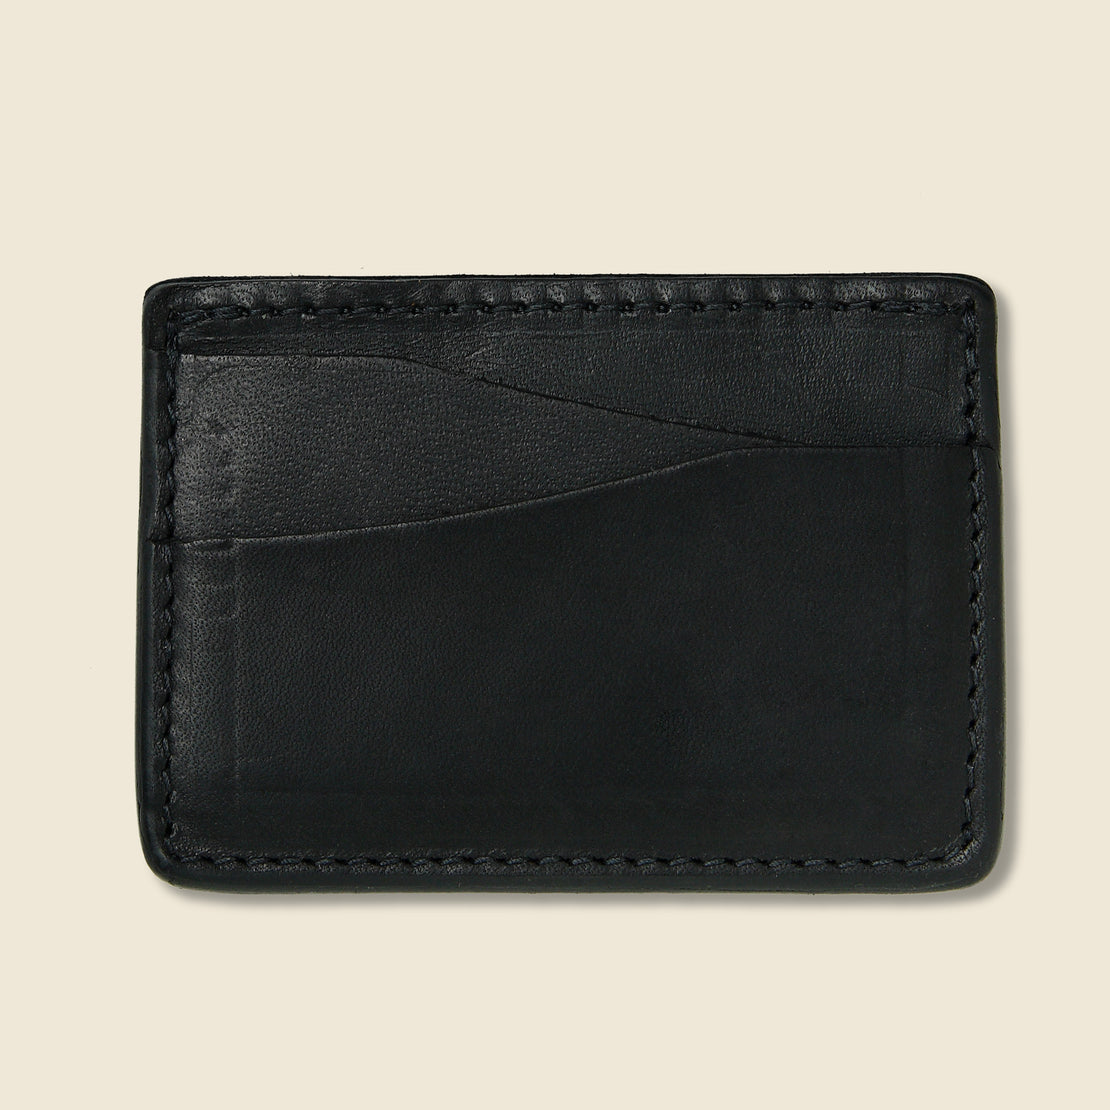 Journeyman Wallet - Black - Tanner - STAG Provisions - Accessories - Wallets